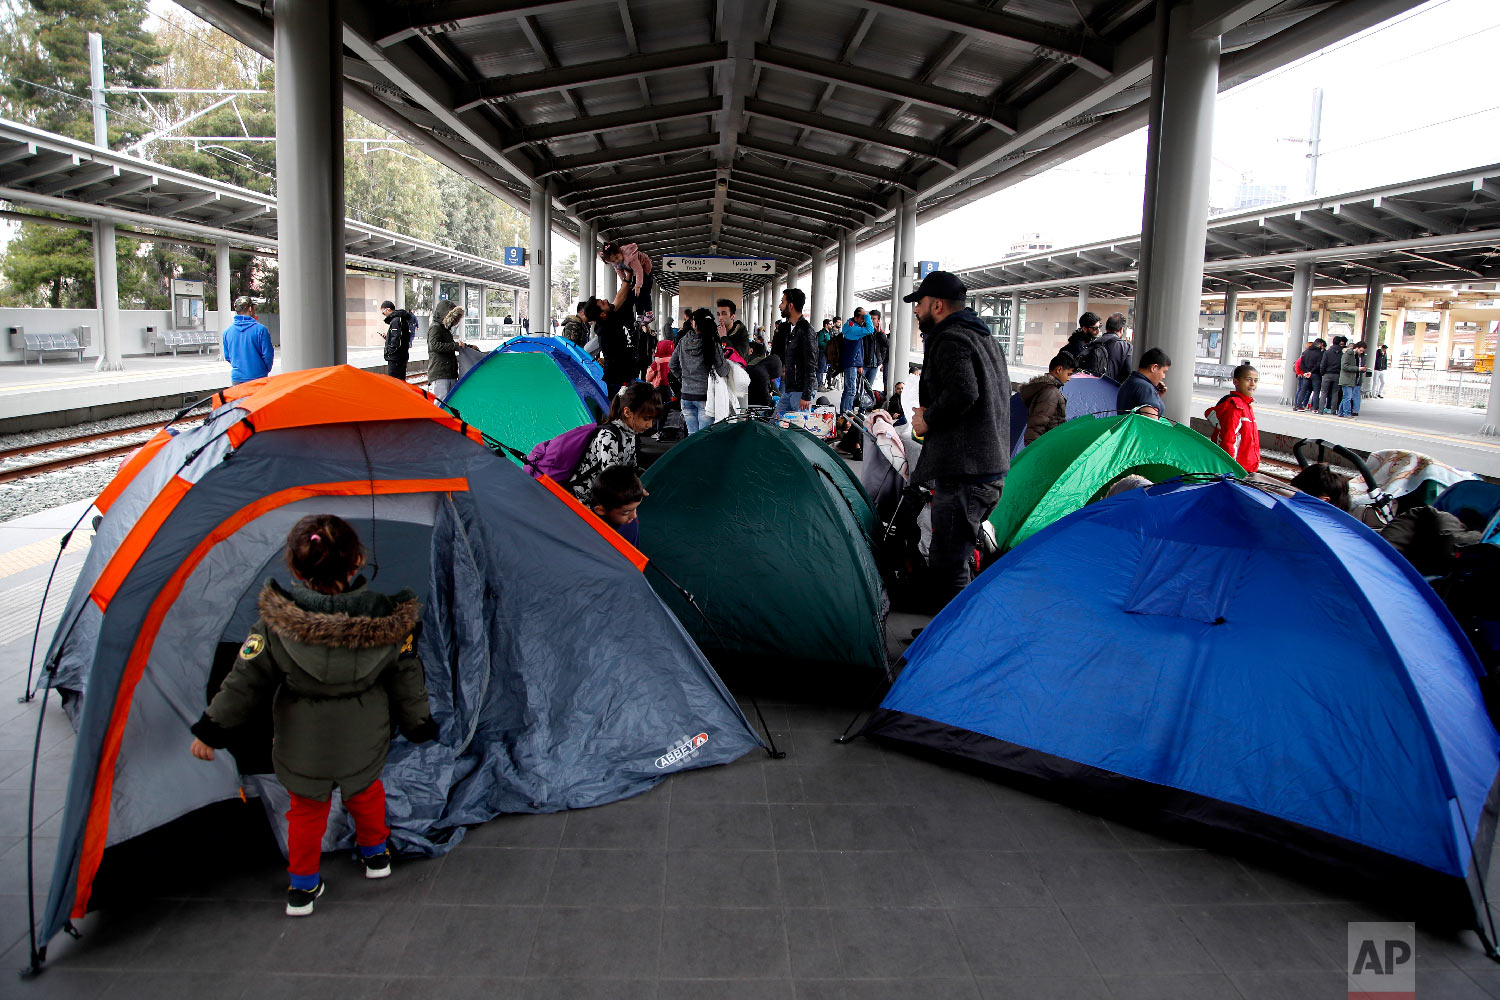 Migrants set up their tents as they blocked the Larissis main rail station in Athens, Friday, April 5, 2019. (AP Photo/Thanassis Stavrakis)